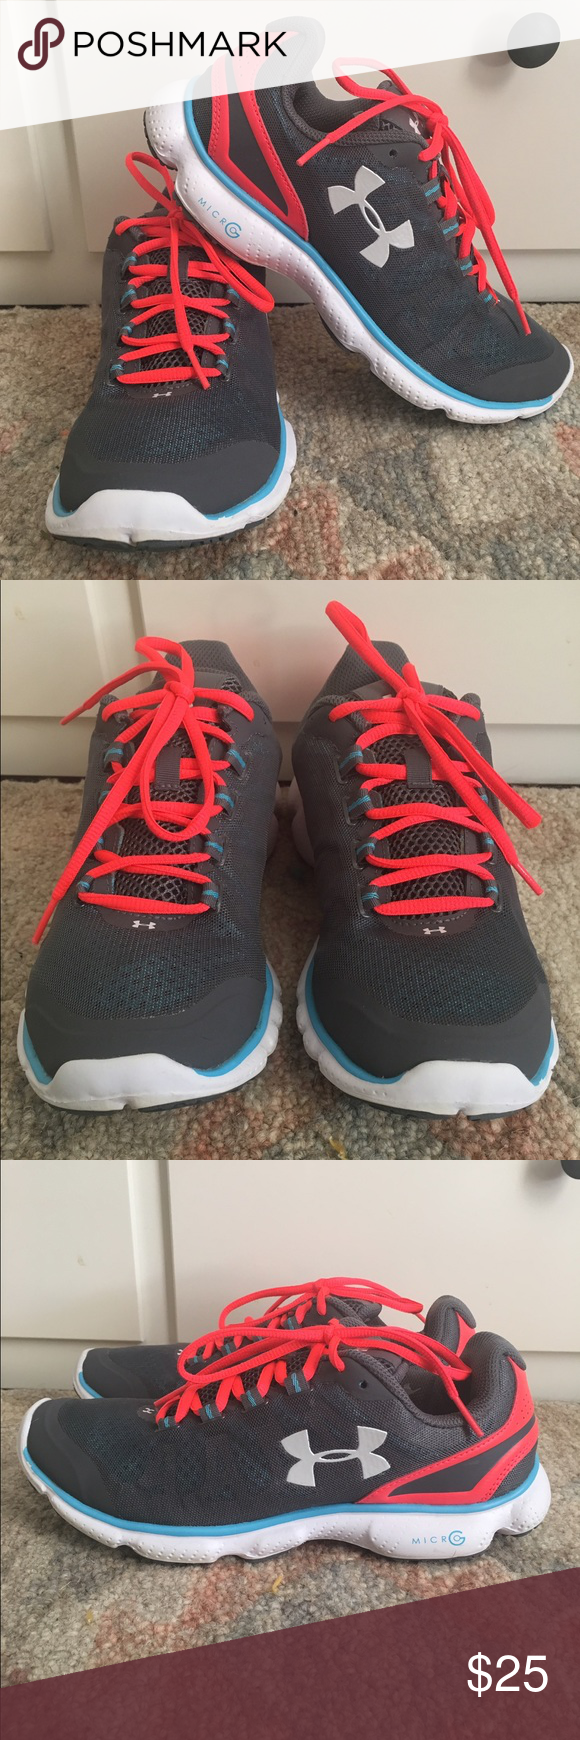 Under Armour Micro G Attack Running Shoe Under Armour running shoes. Good condition. Under Armour Shoes Sneakers